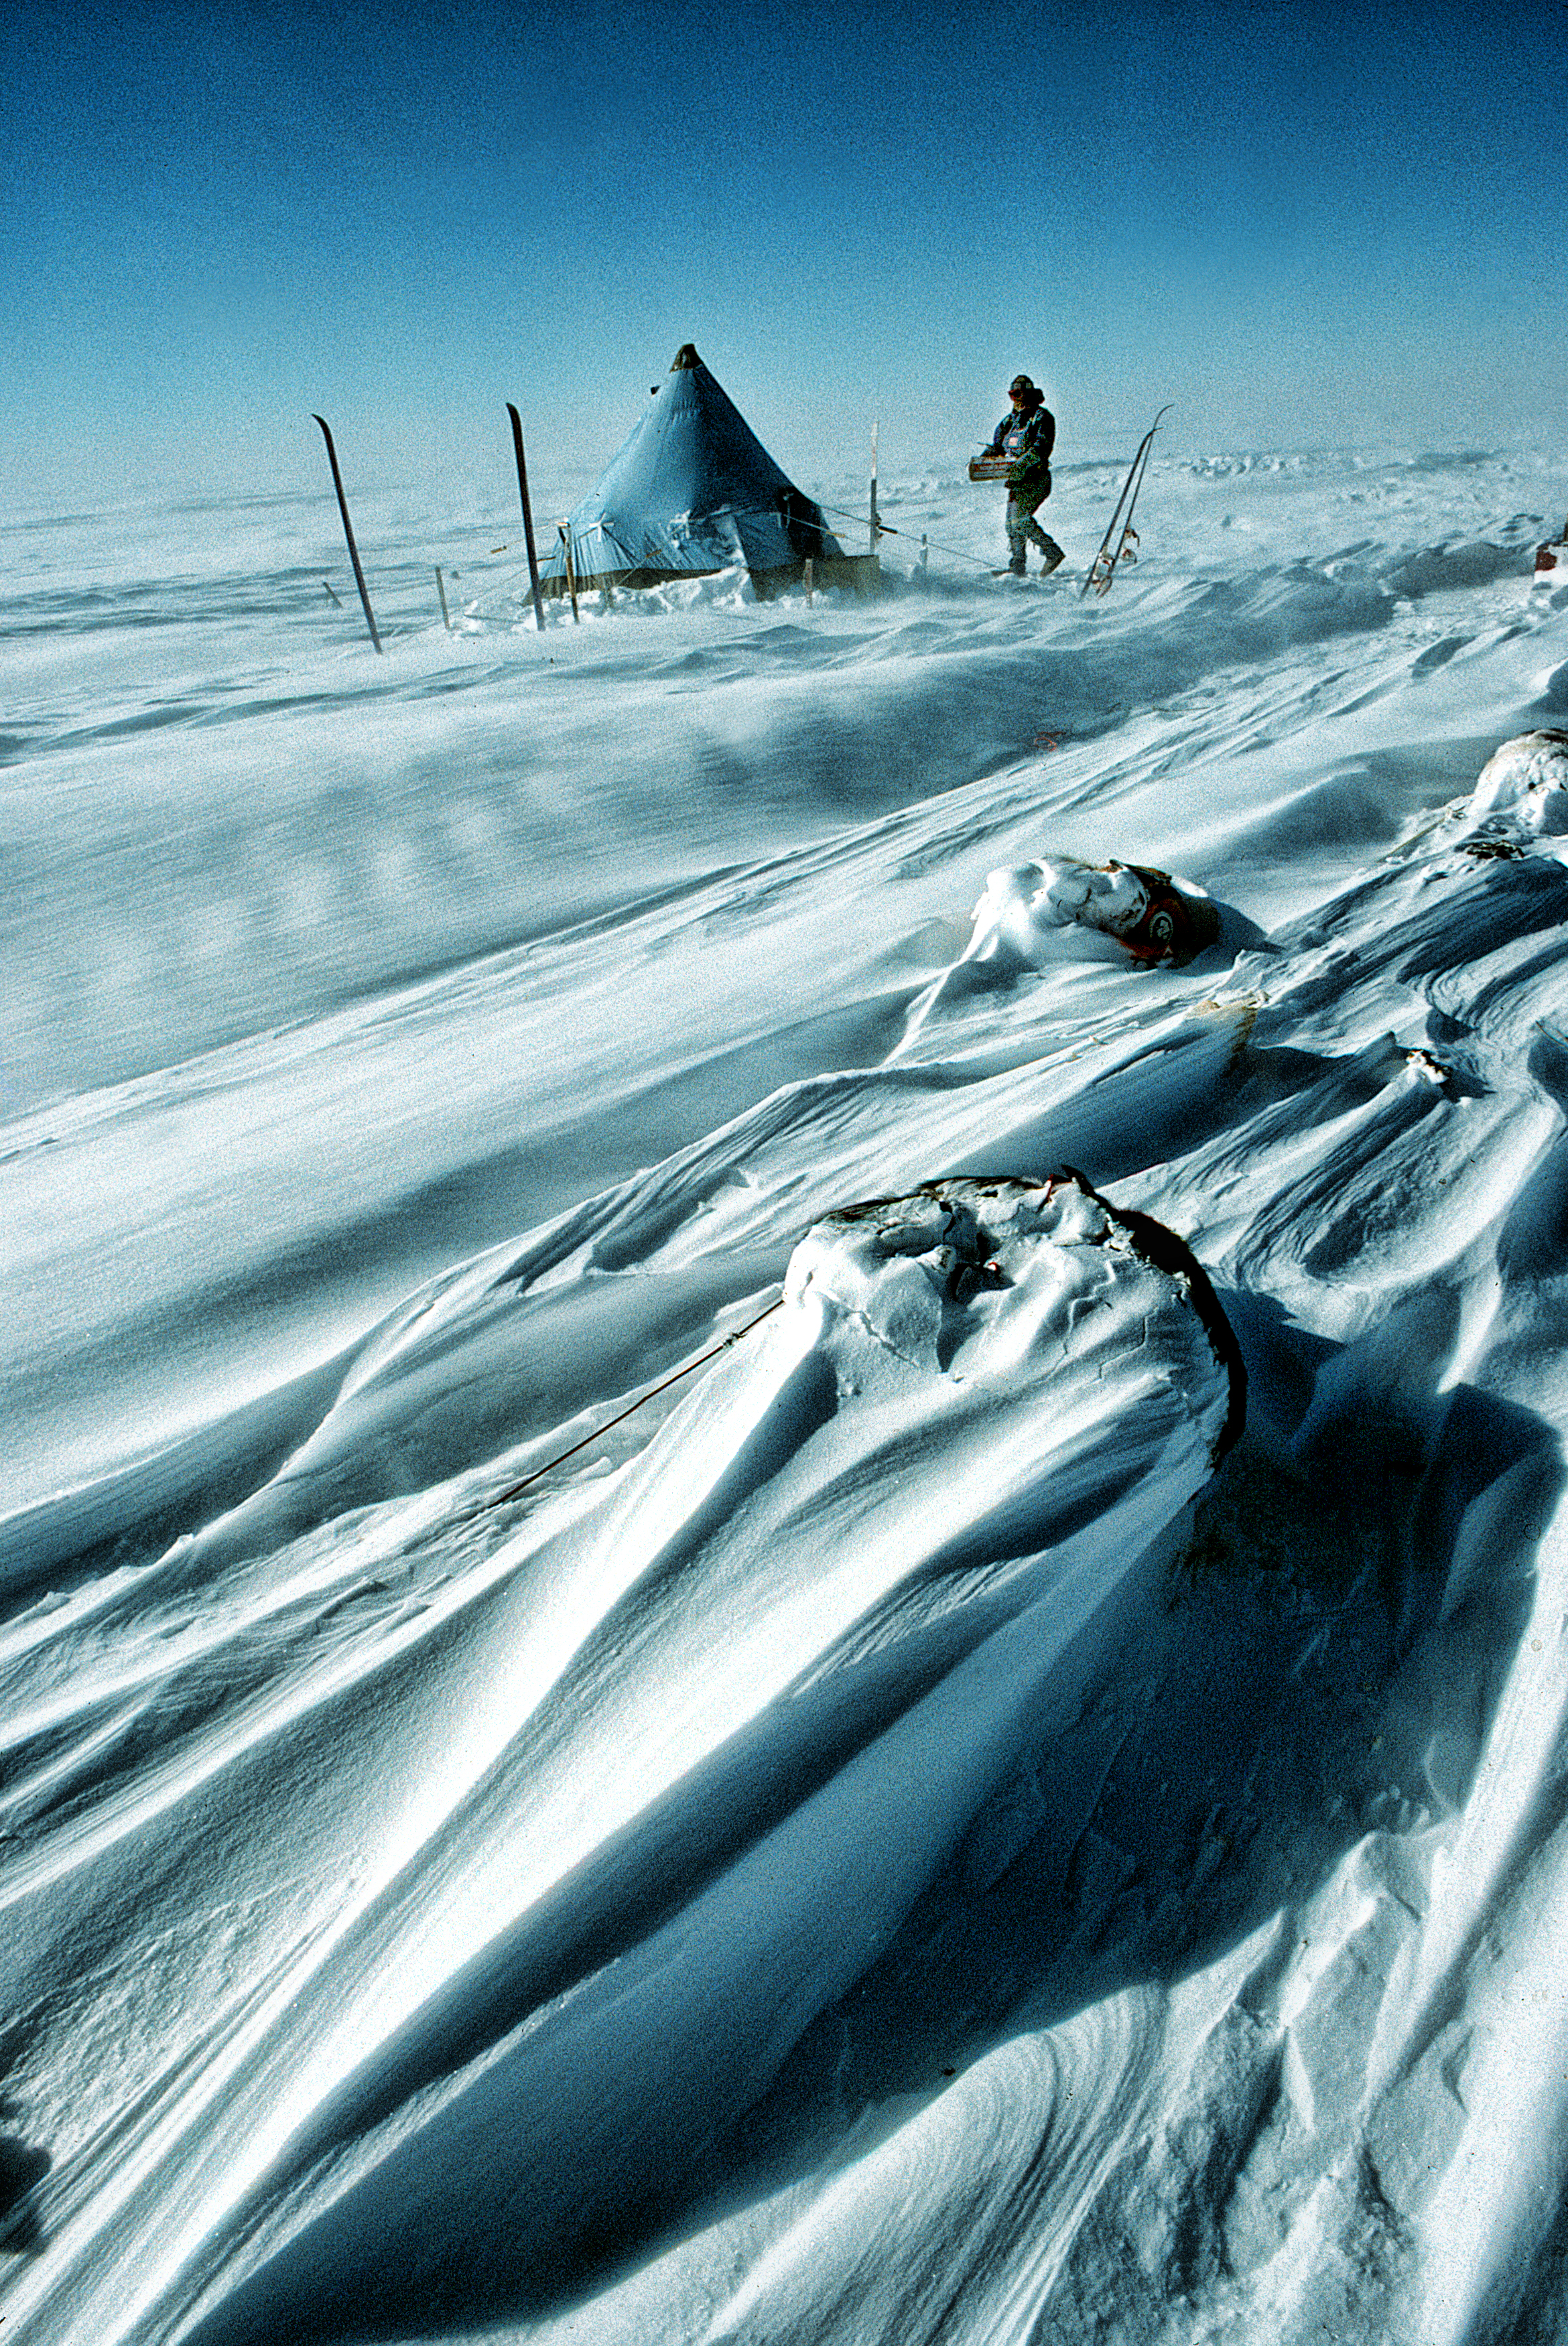 Geoff's pyramid tent and Antarctic sastrugi that has formed around the sleeping dogs. ©Trans-Antarctica photo by Per Breiehagen